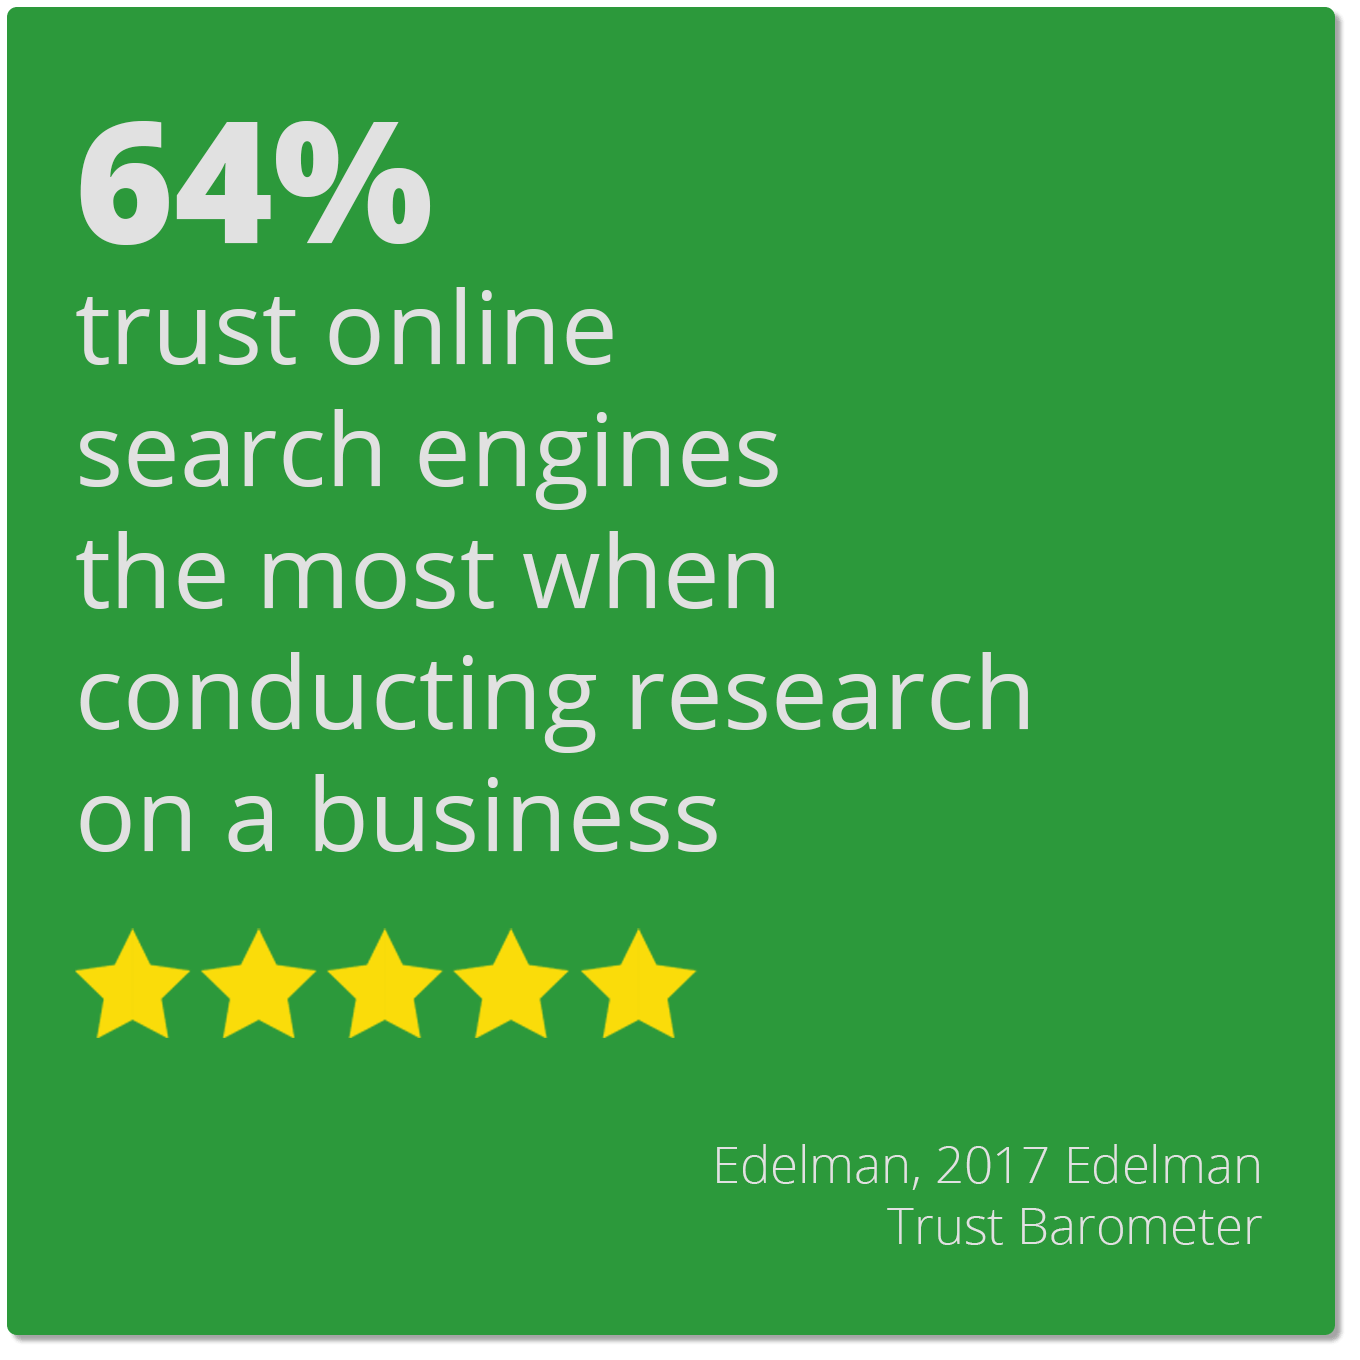 64% trust online search engines the most when conducting research on a business